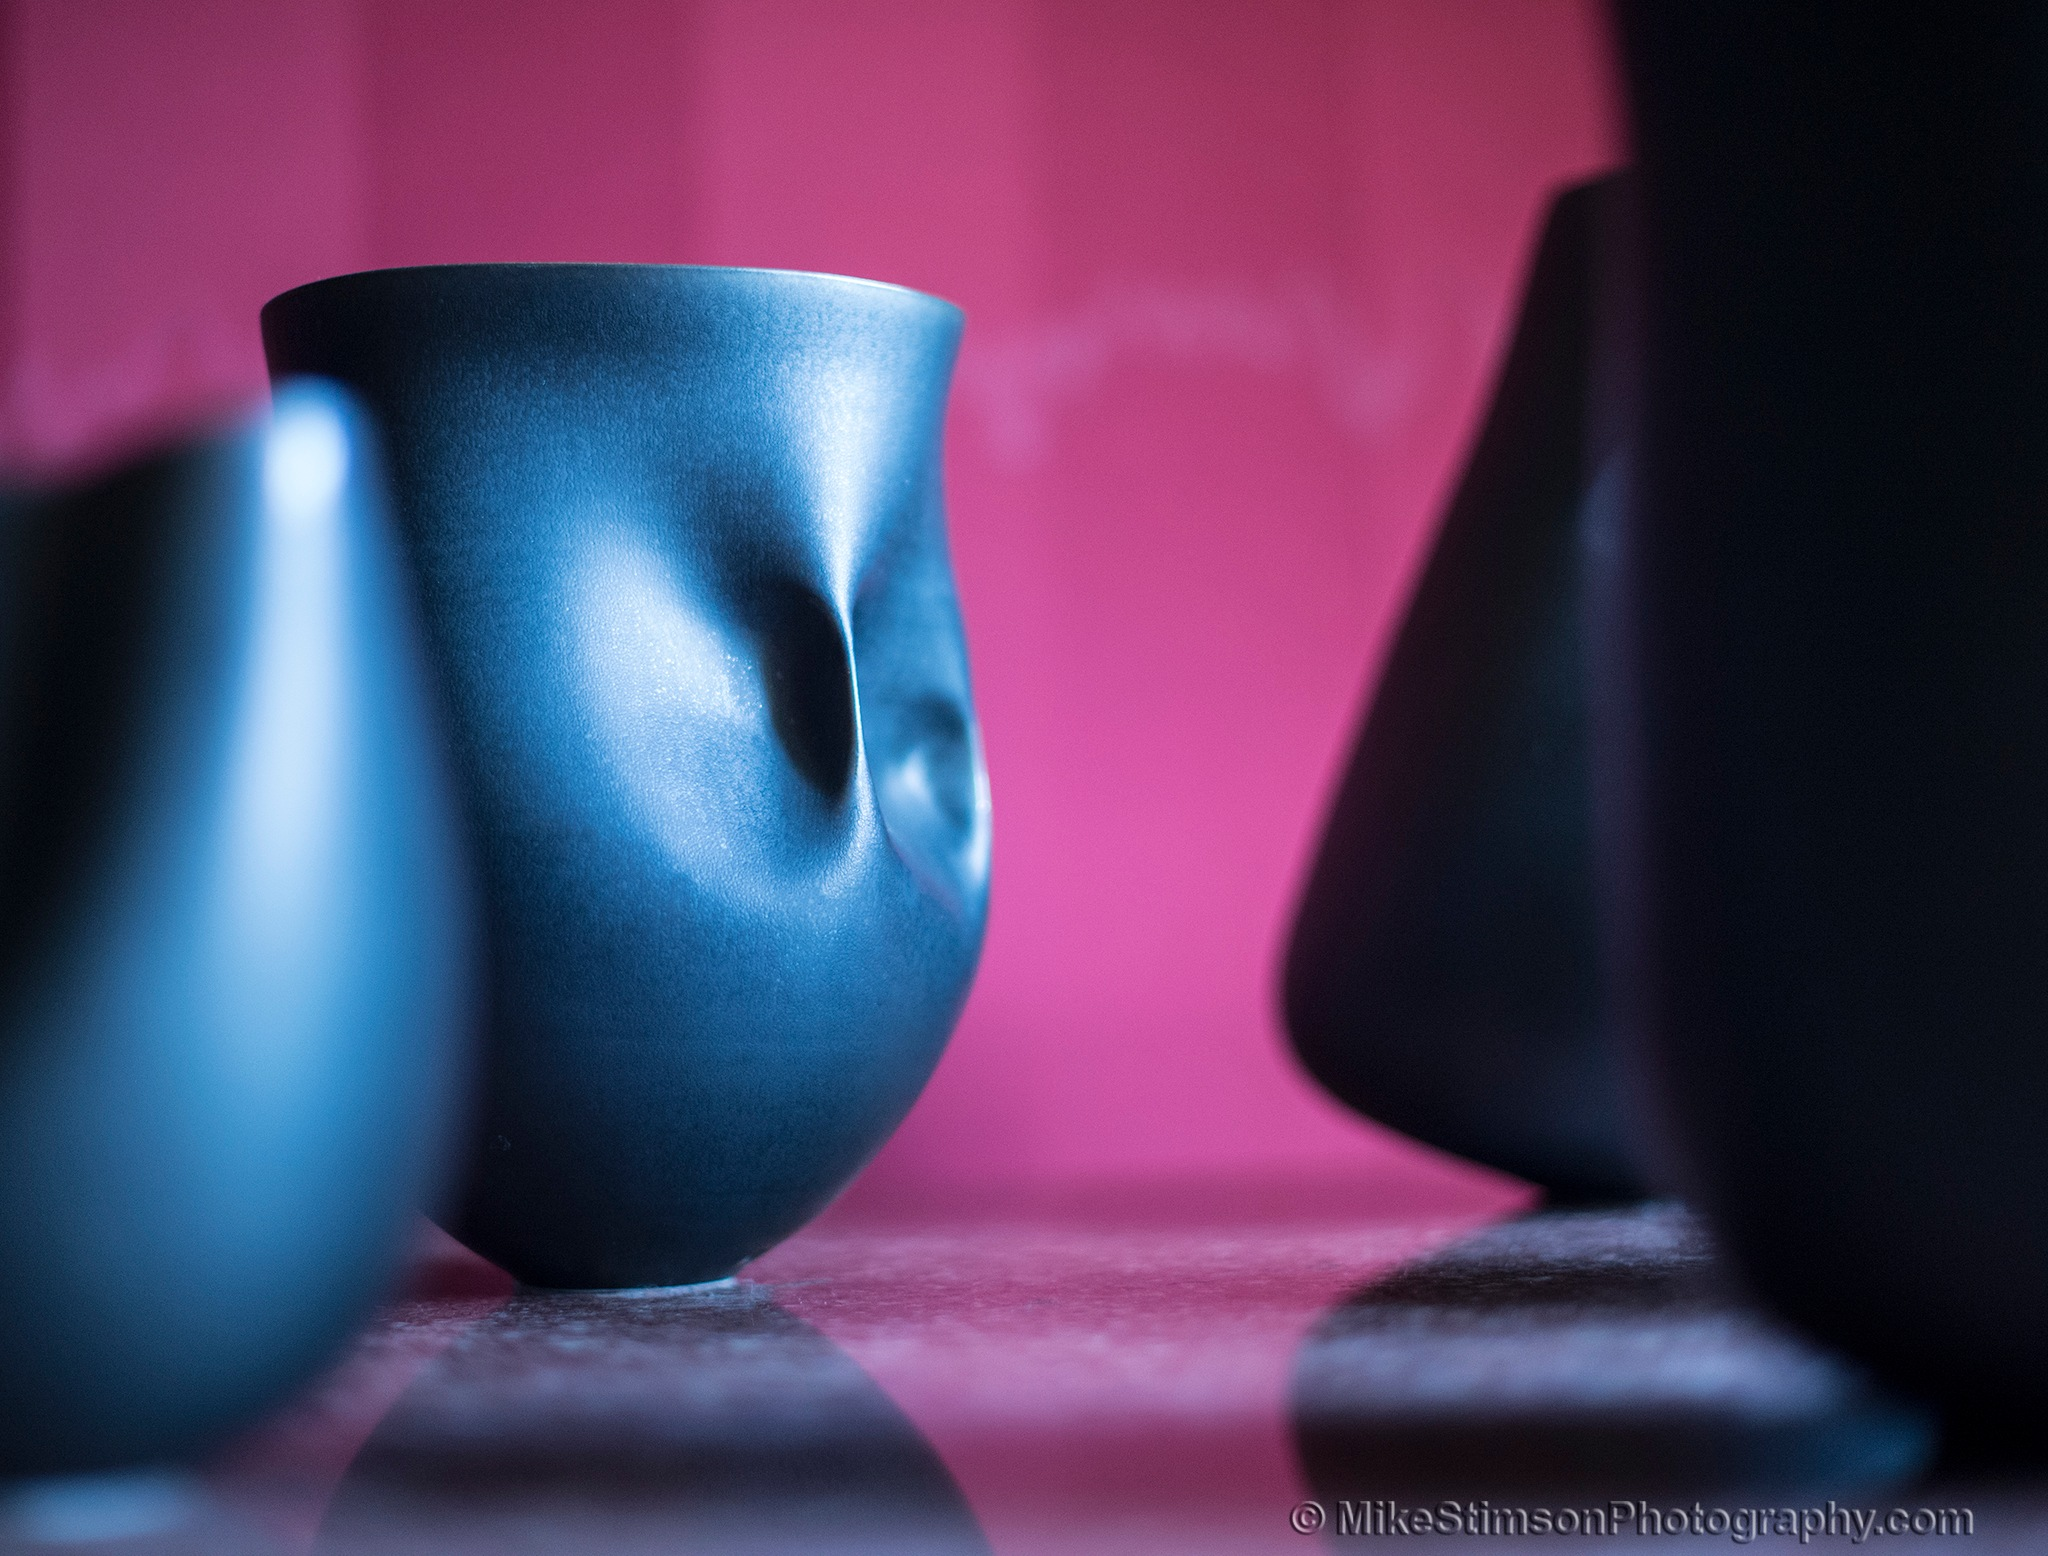 Hand crafted ceramics by Mike Stimson